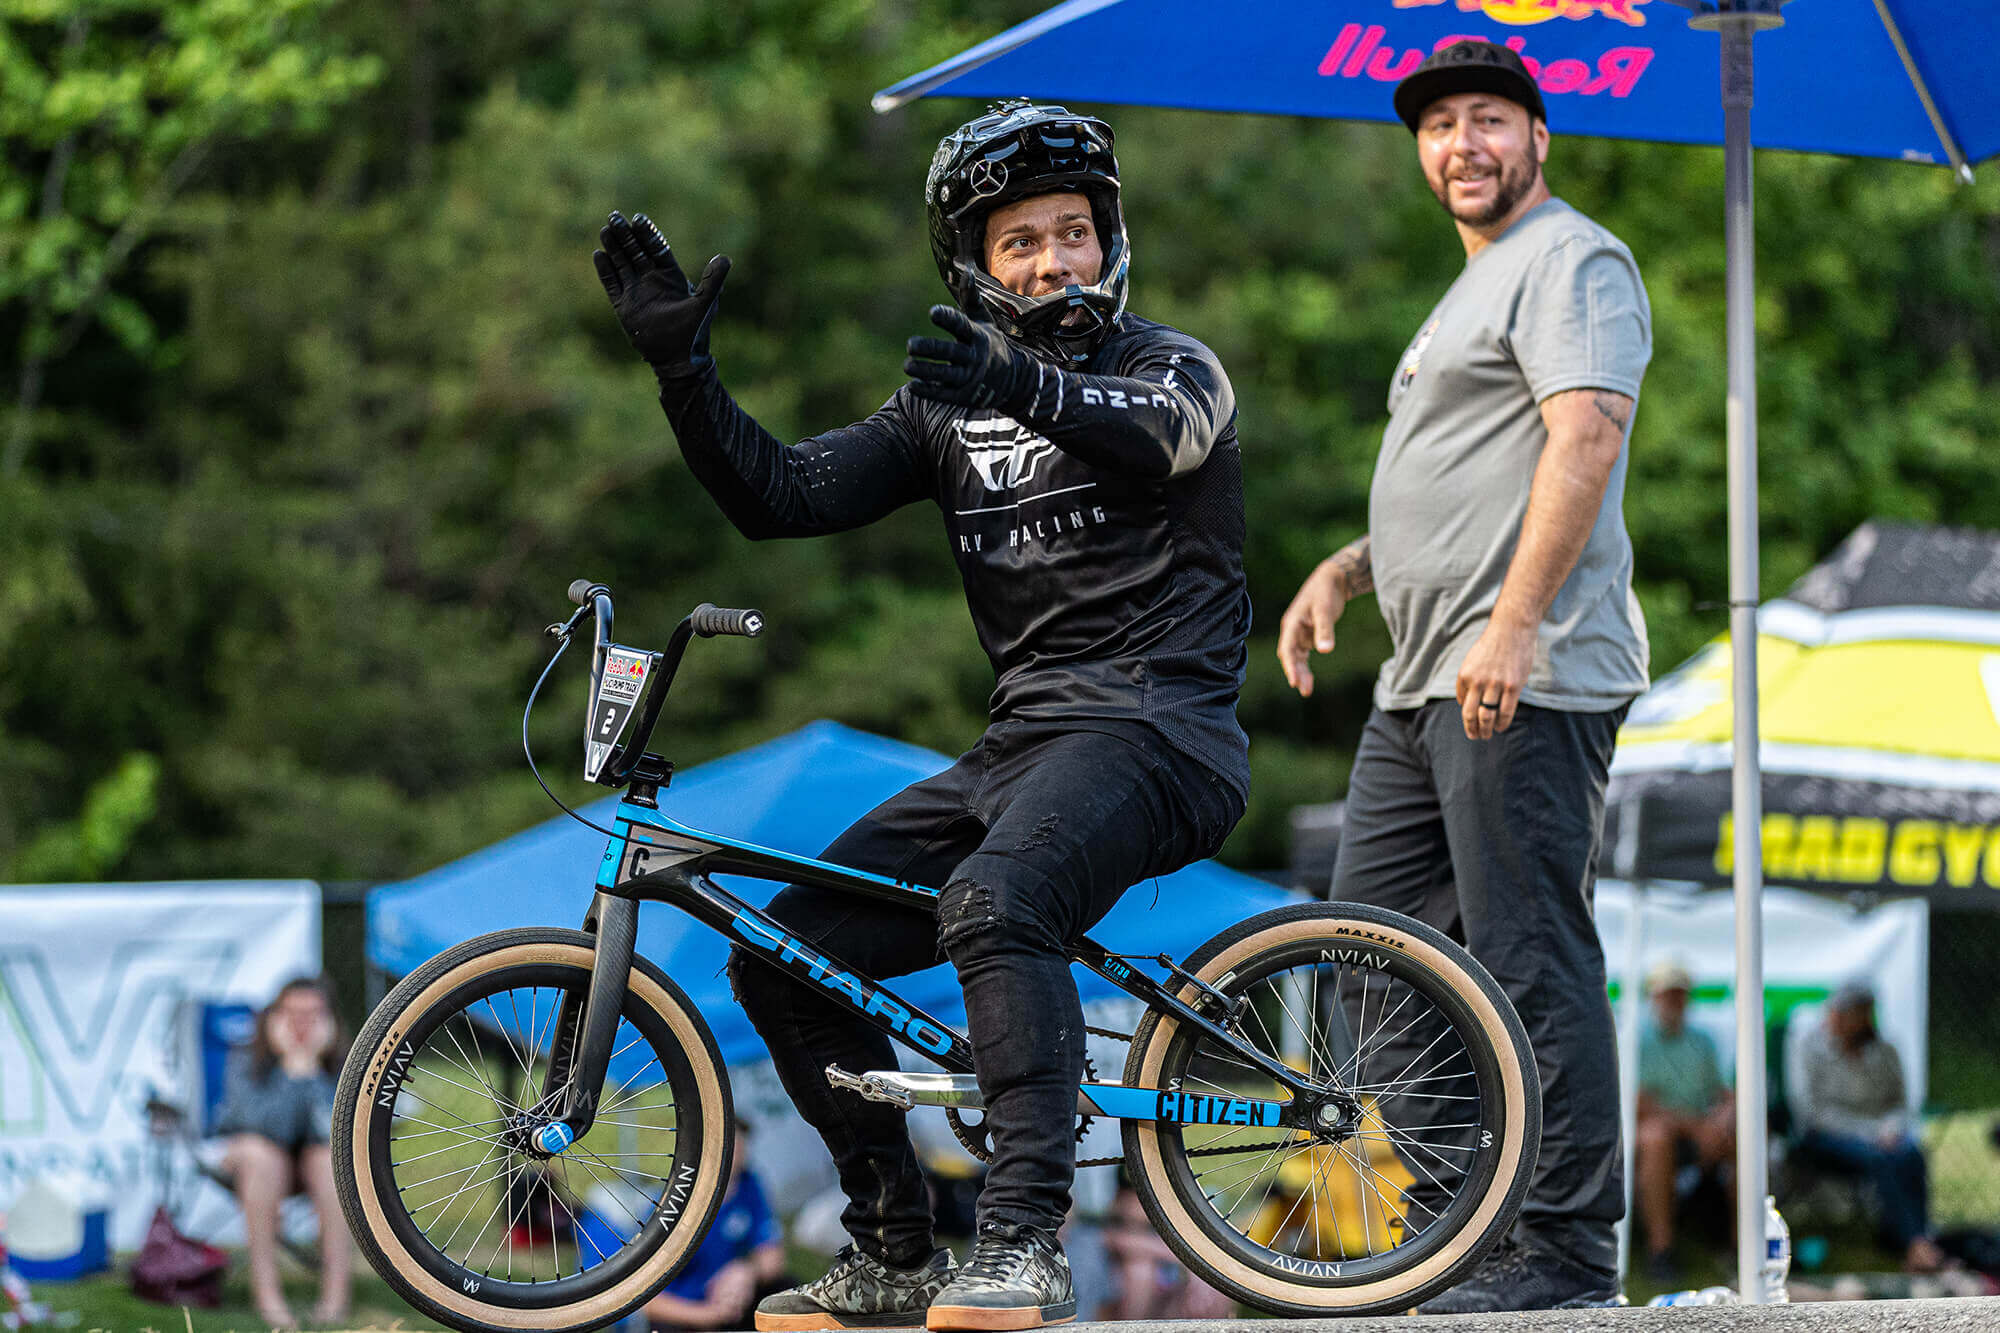 Red Bull Pump Track Qualifier Gaston County May 2021 - Brian Hall - ATL-0088